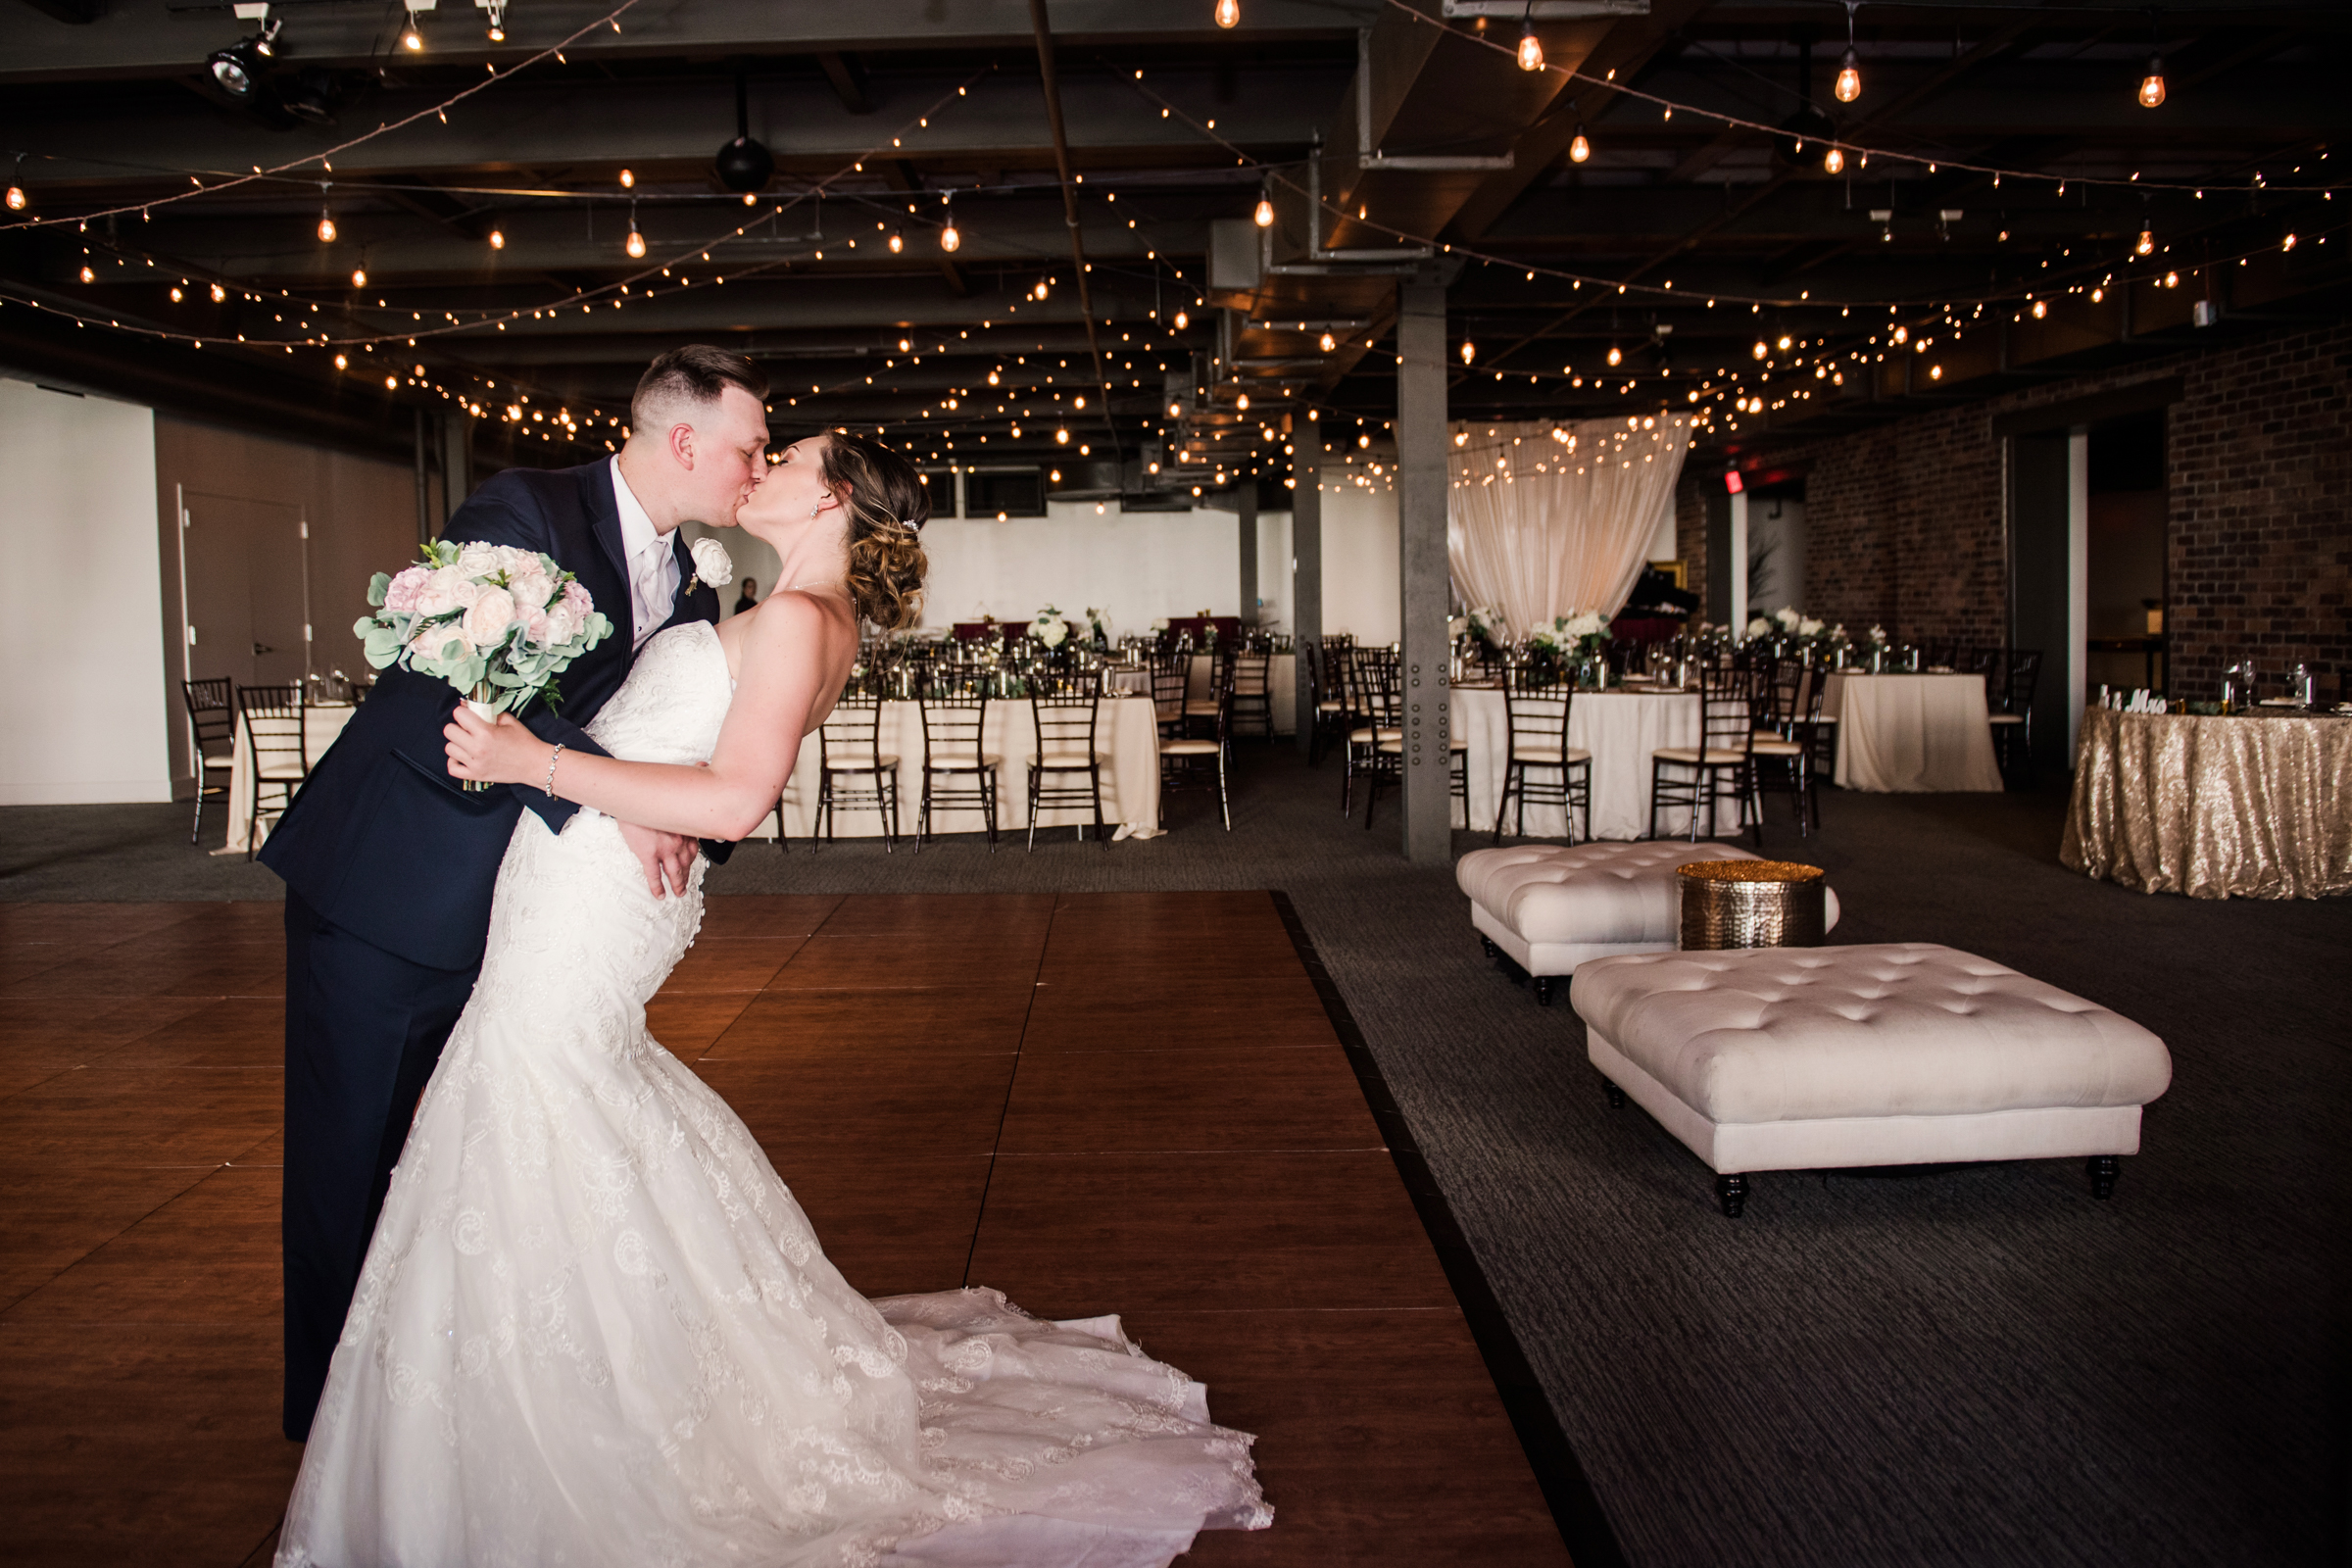 JILL_STUDIO_Wedding_JILL_STUDIO_Rochester_NY_Photographer_6-DSC_2539.jpg